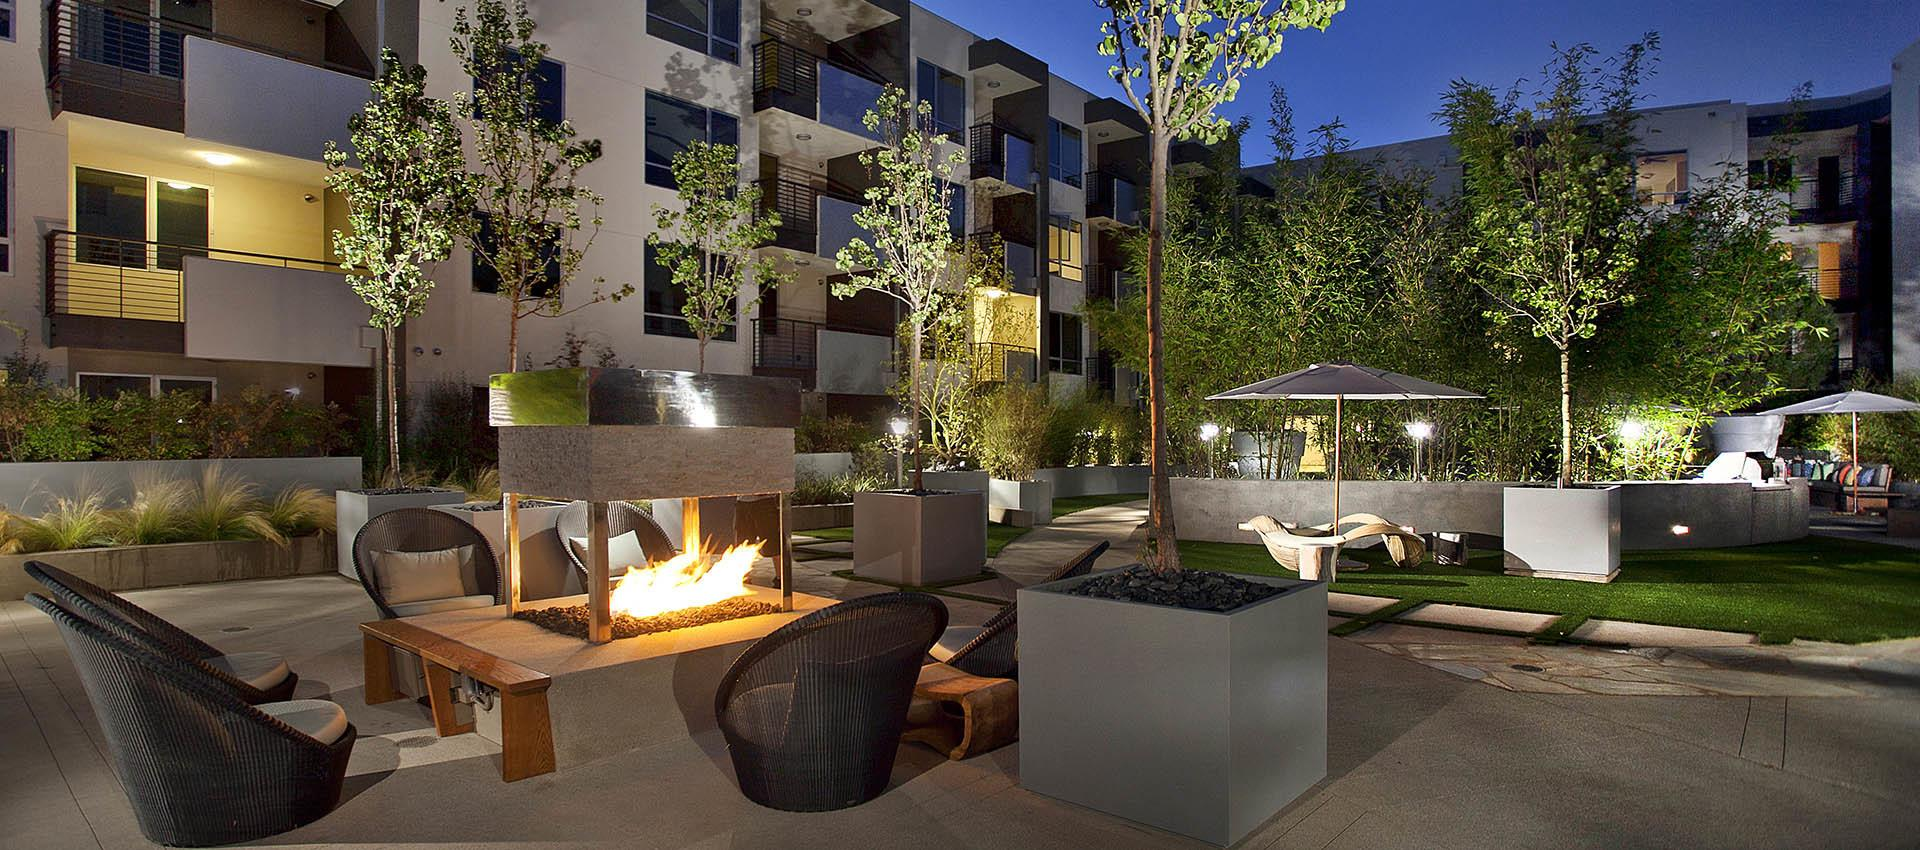 Photos of brio apartment homes in glendale ca for New homes glendale ca